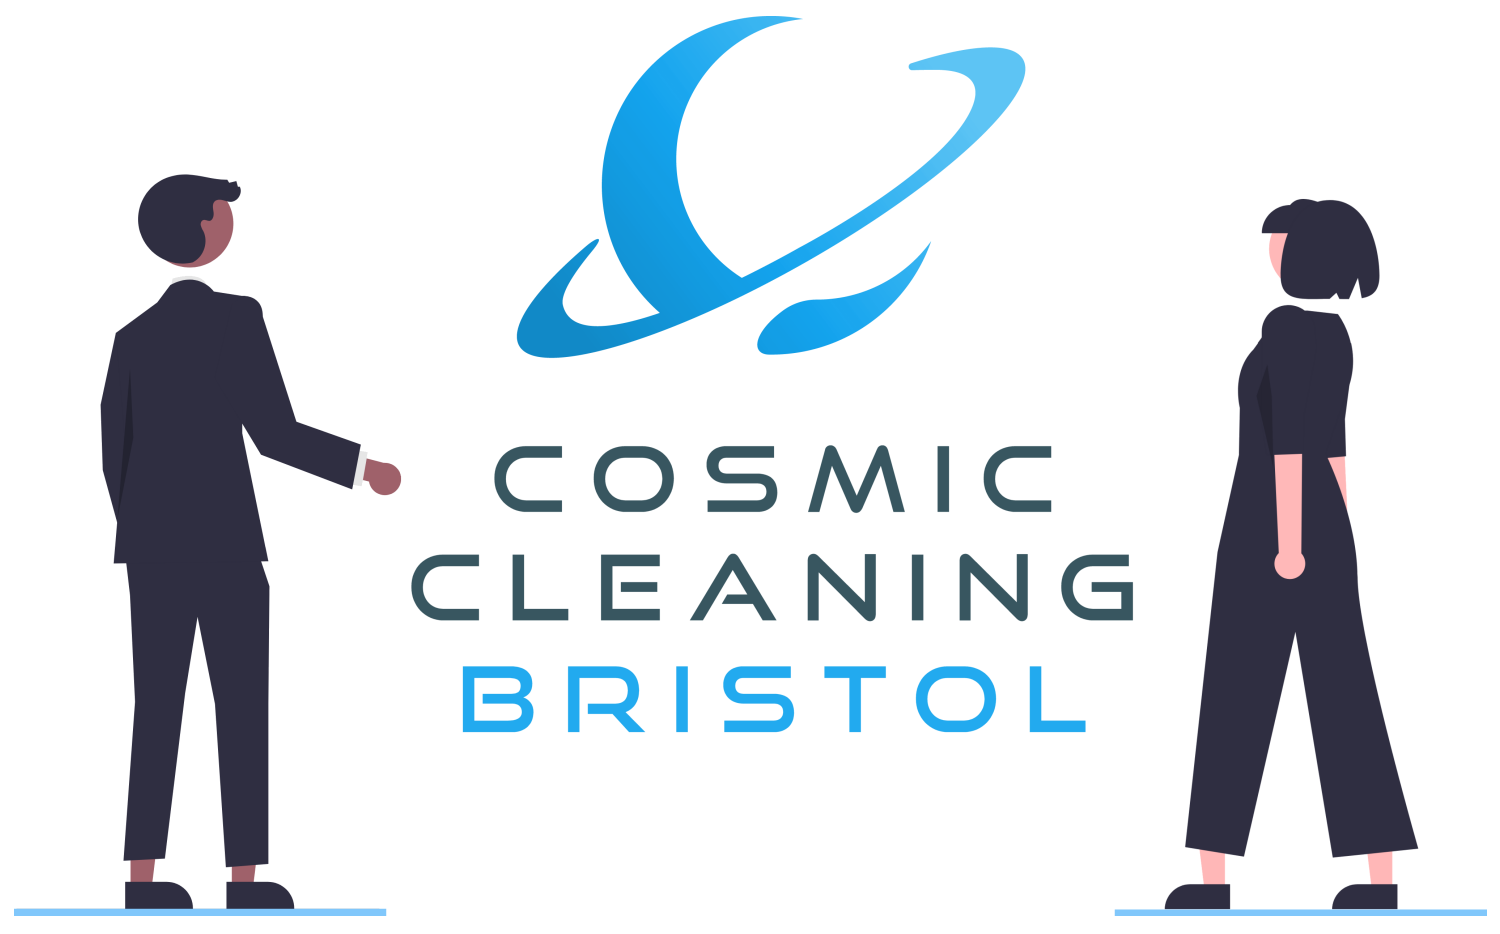 Two Undraw people admiring the Cosmic Cleaning Bristol logo